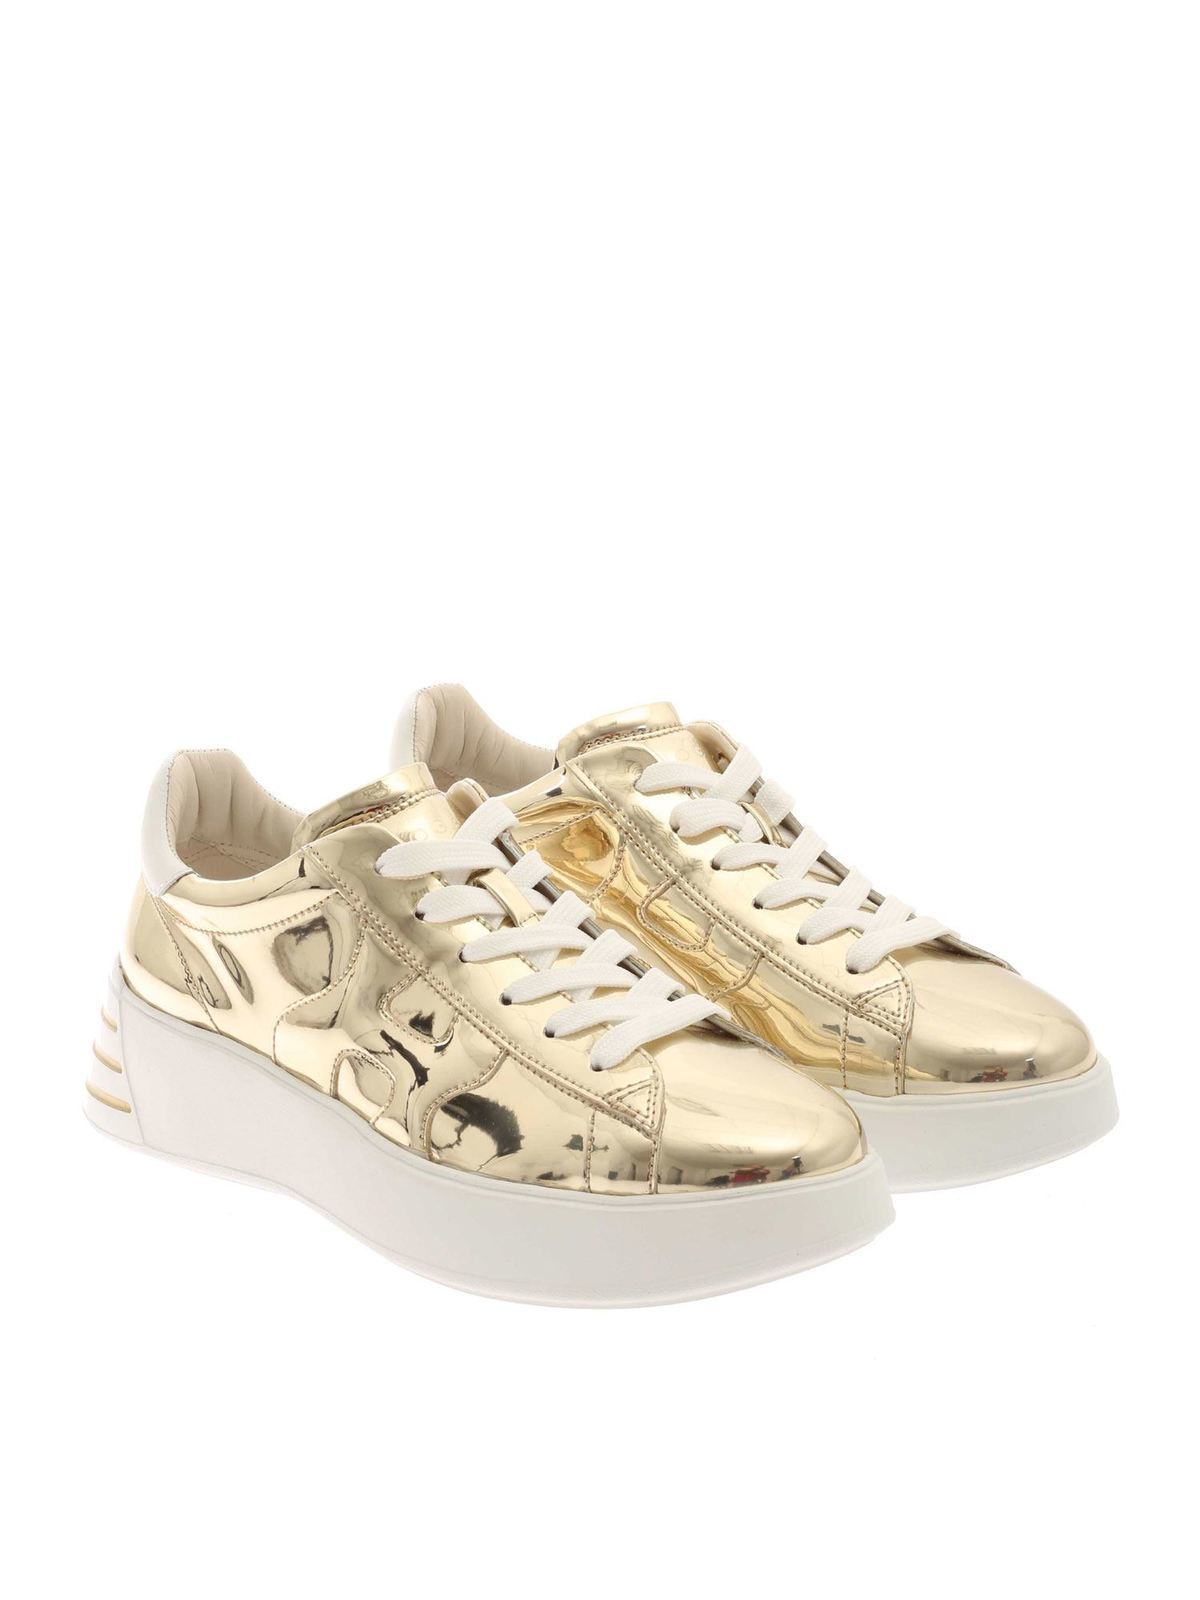 Trainers Hogan - Rebel H564 sneakers in gold color ...